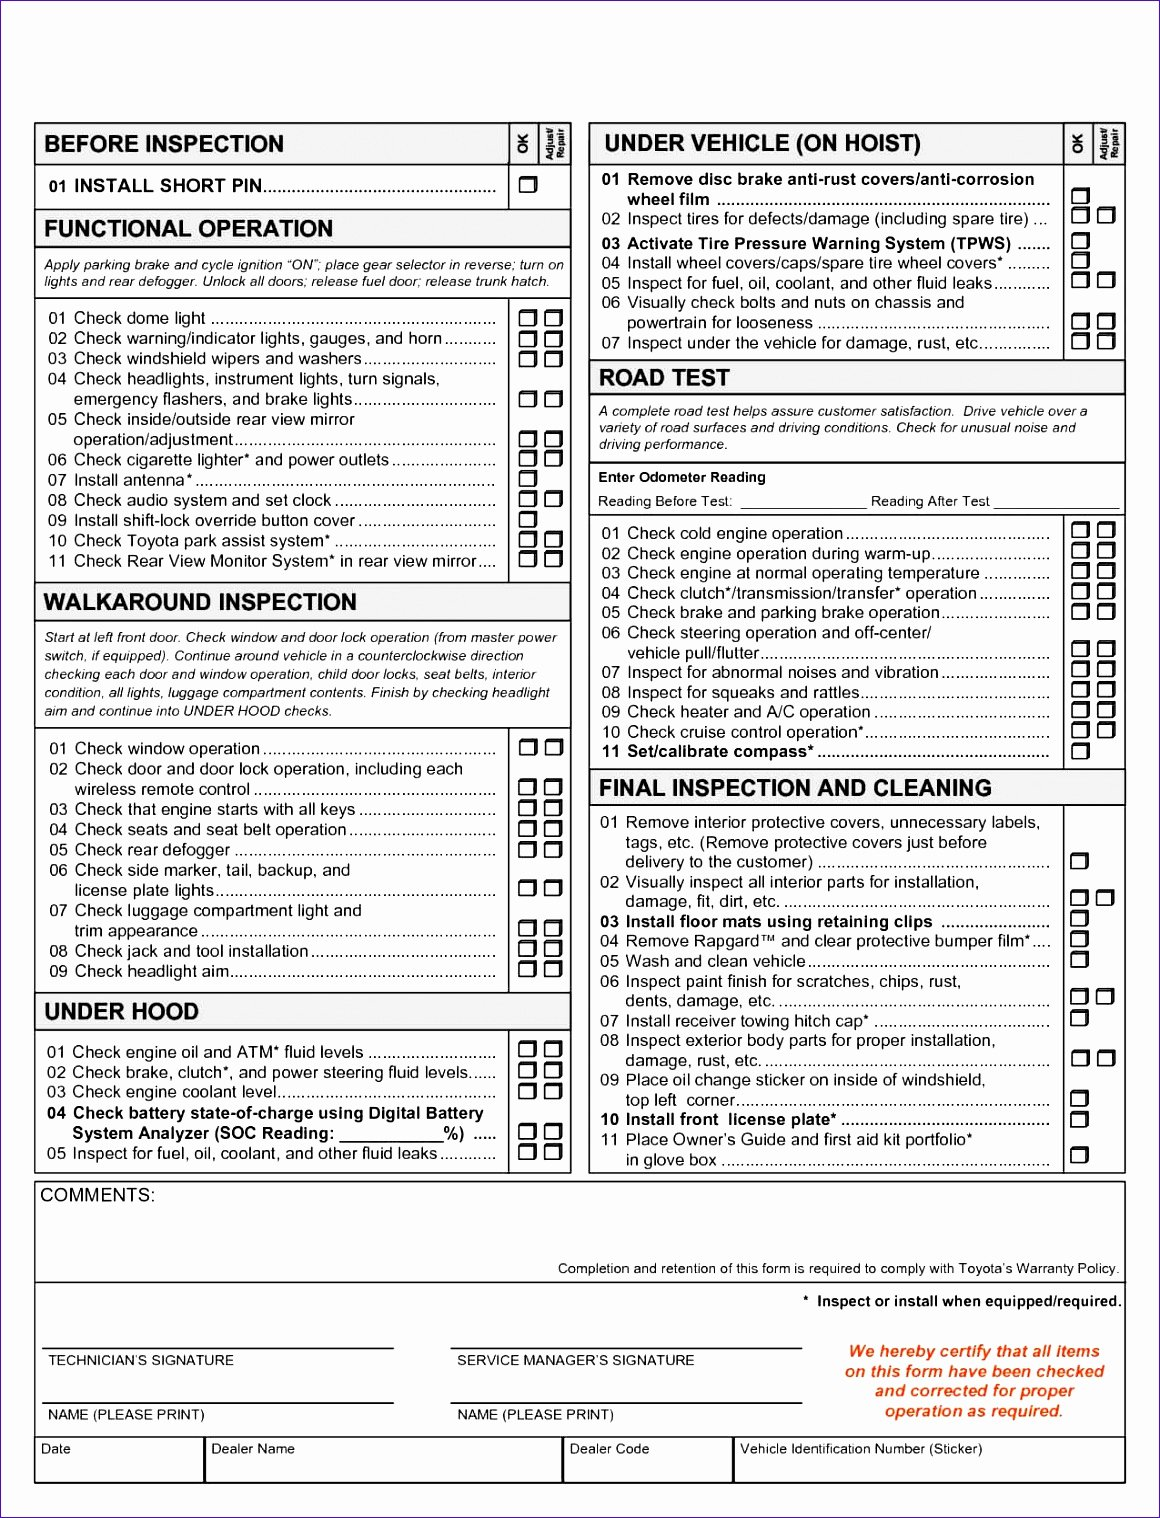 Home Inspection Checklist Templates Inspirational 6 Home Inspection Template Excel Exceltemplates